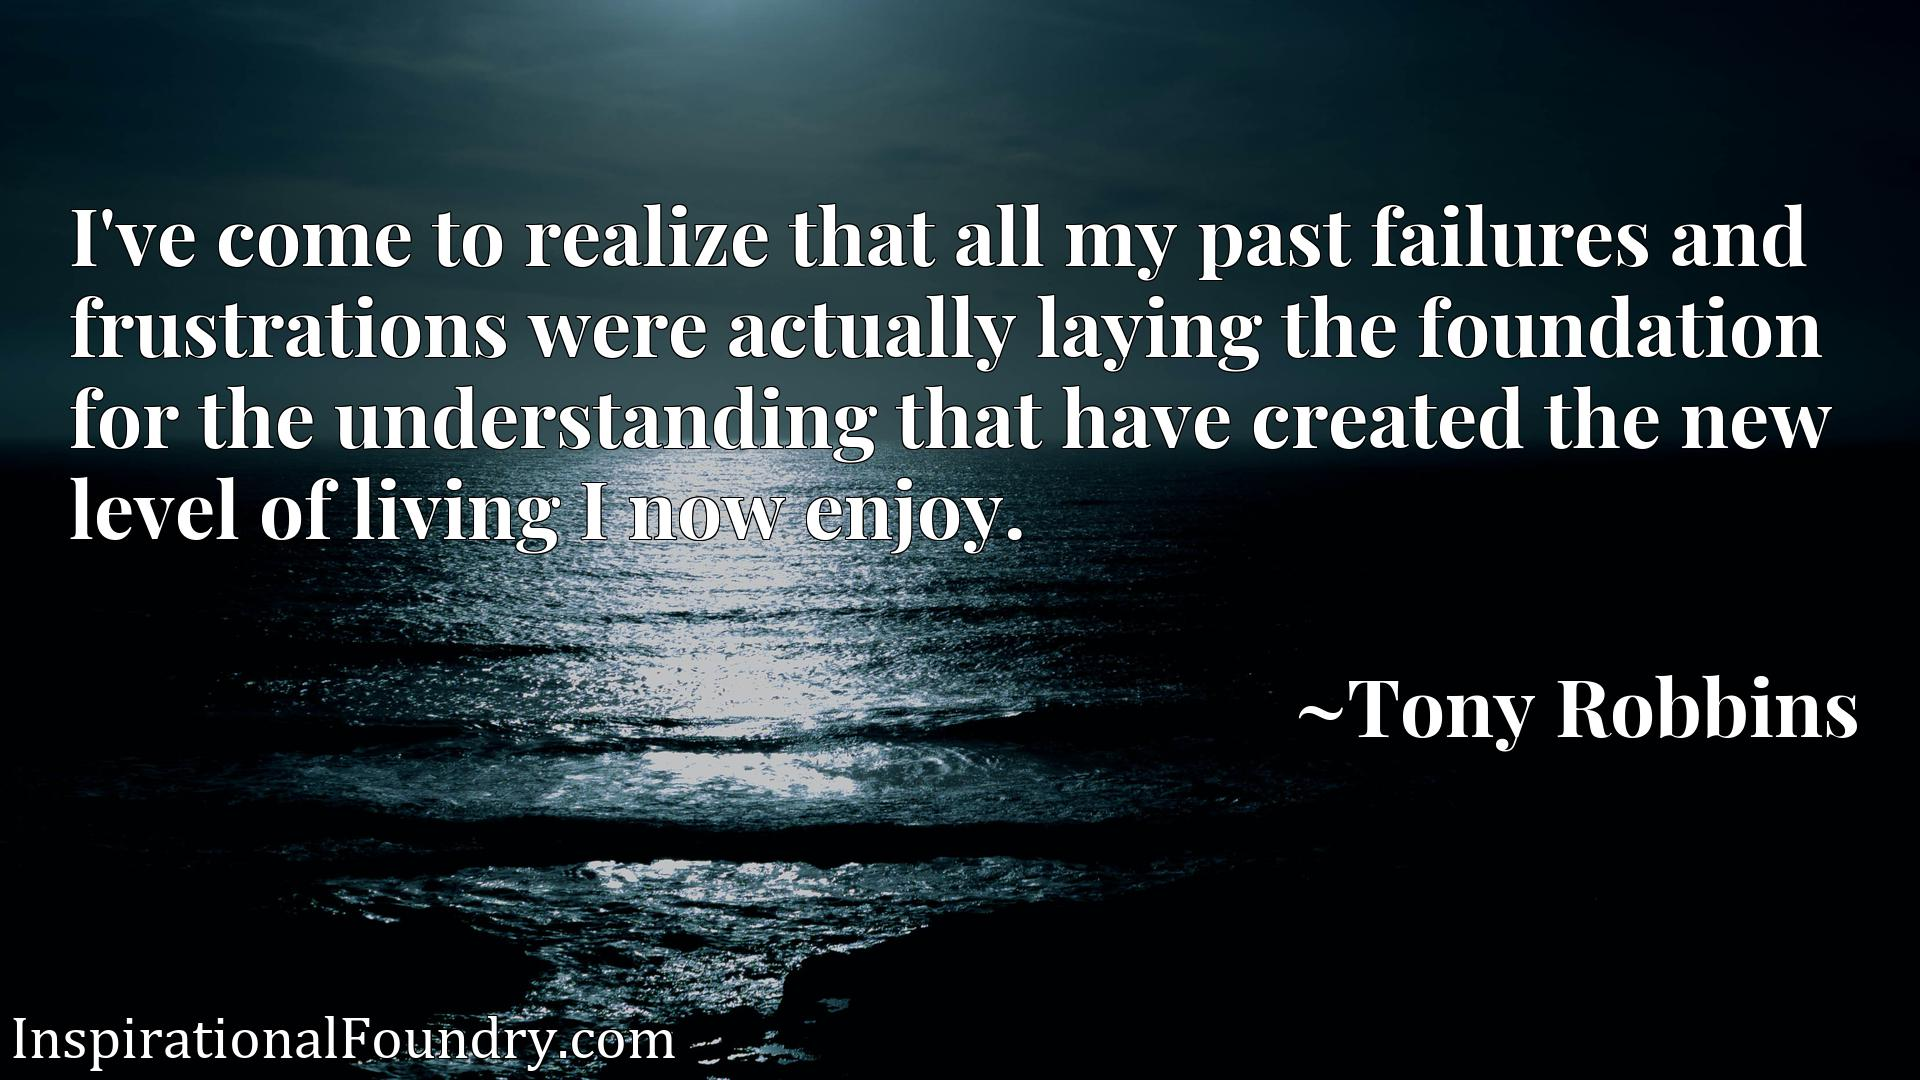 I've come to realize that all my past failures and frustrations were actually laying the foundation for the understanding that have created the new level of living I now enjoy.